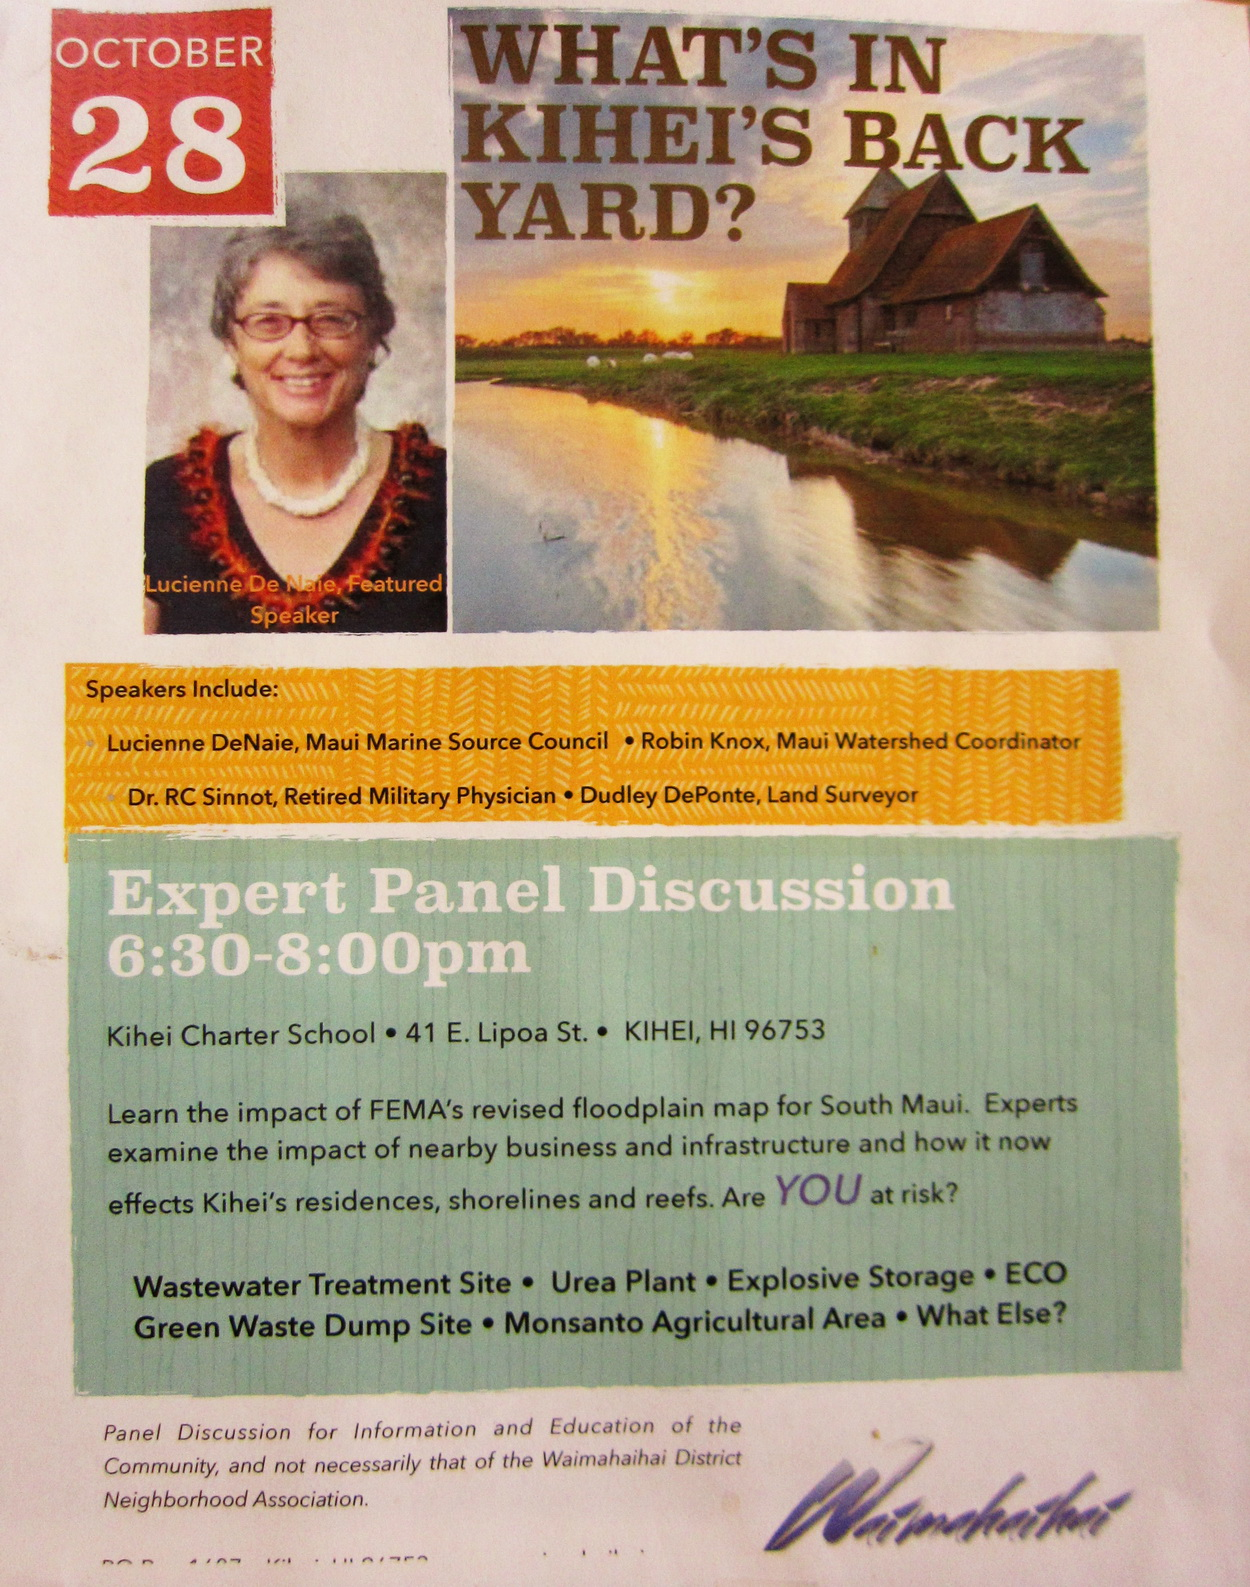 Meeting this Tuesday on Impact of FEMA on S. Maui